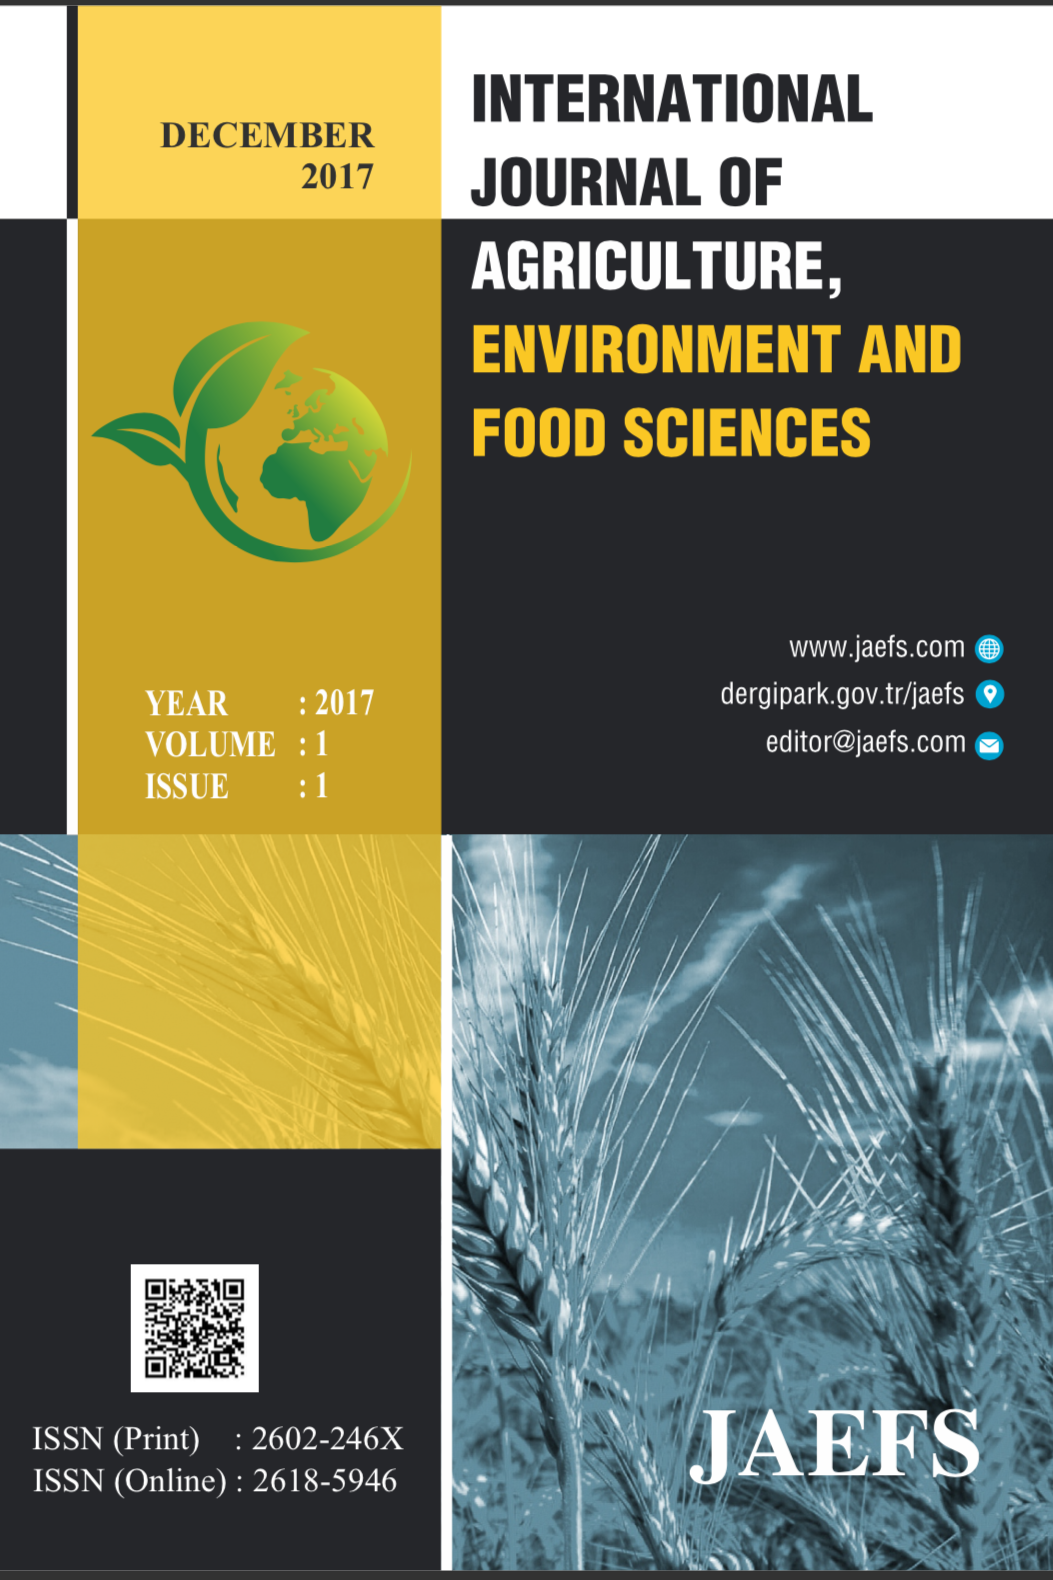 International Journal of Agriculture Environment and Food